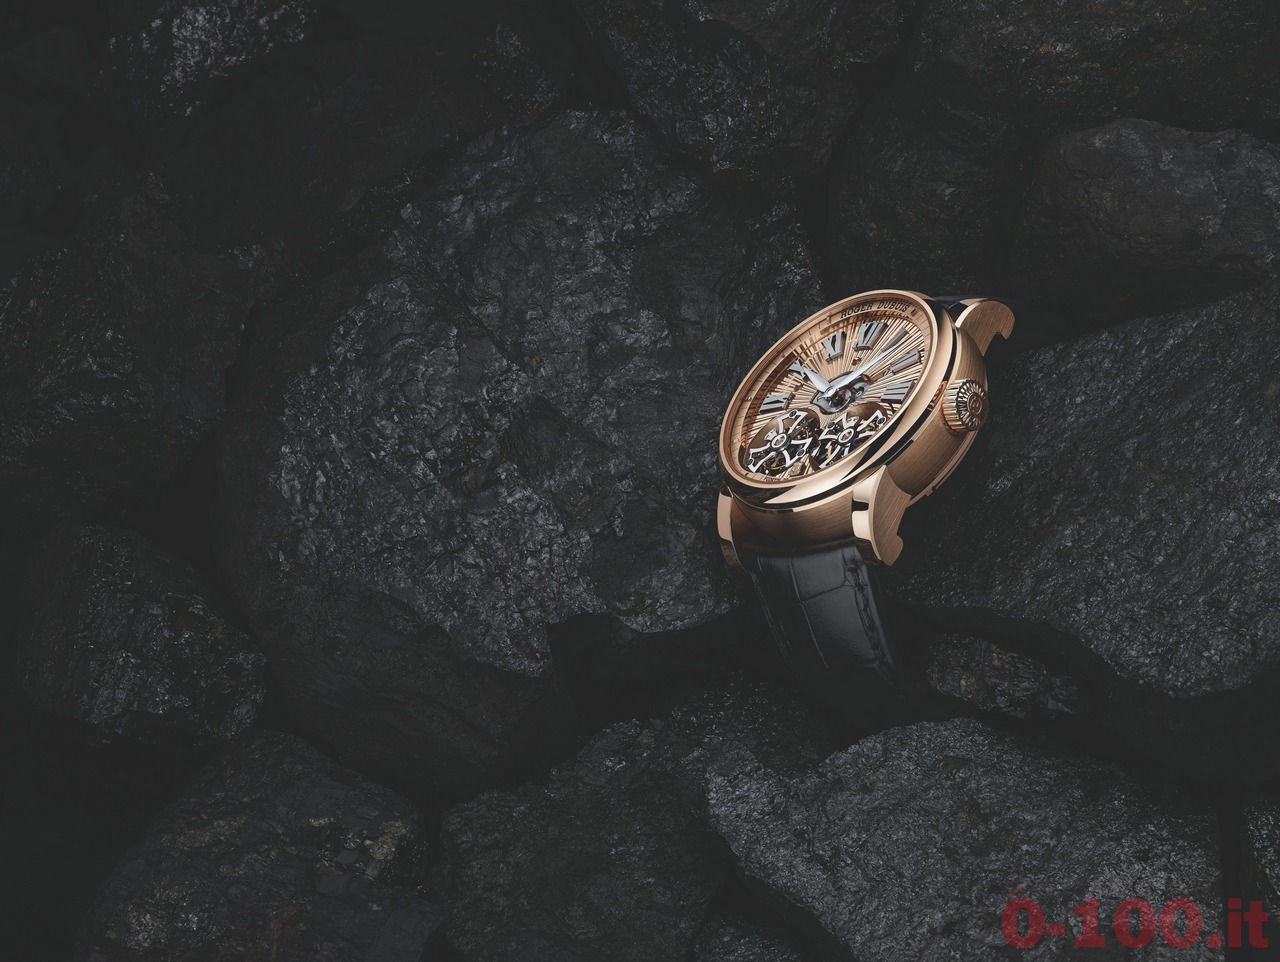 roger-dubuis-alla-watcheswonders-2014-0-100_4